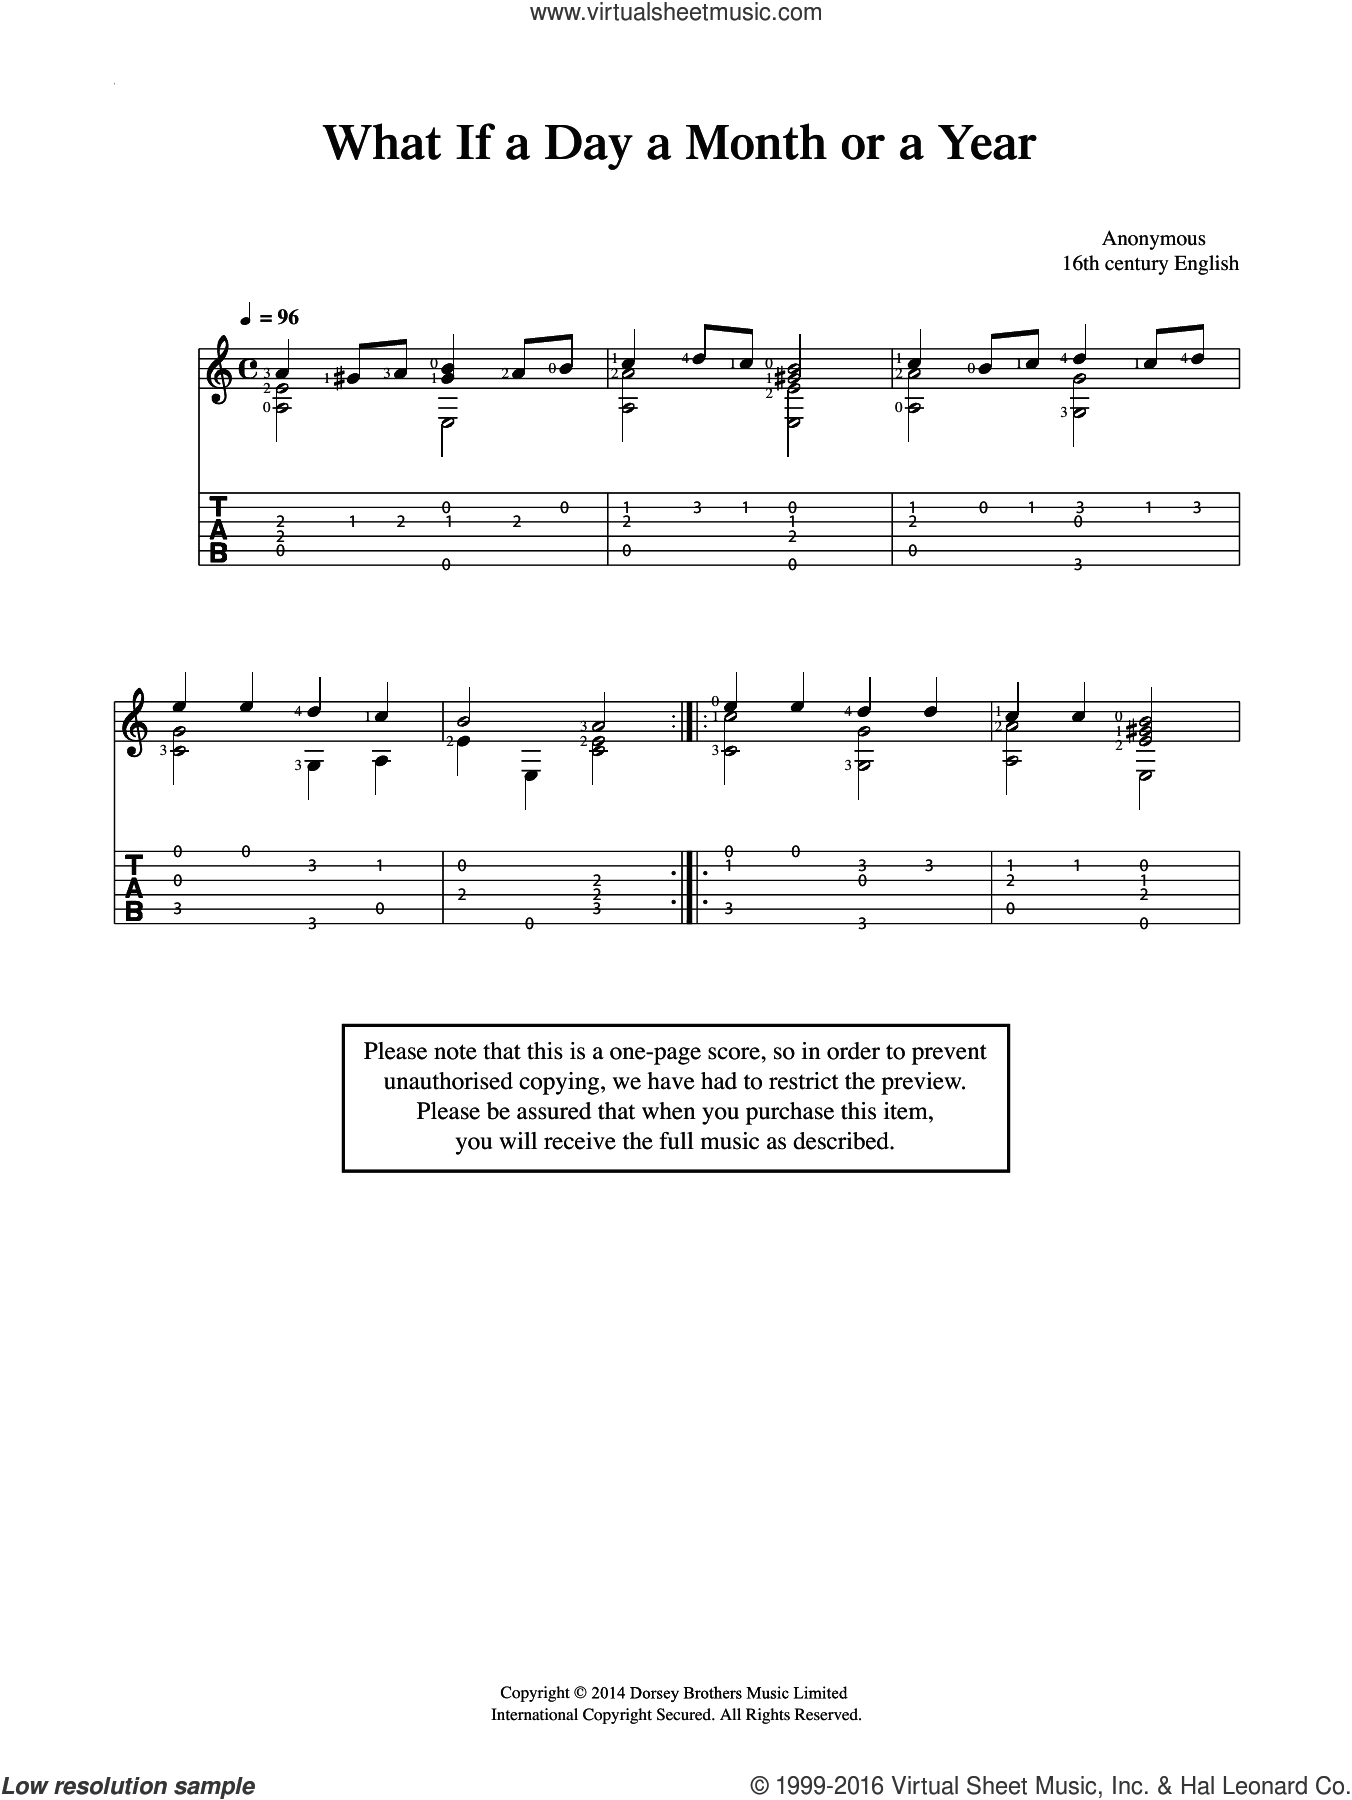 What If A Day A Month Or A Year sheet music for guitar solo (chords) by Anonymous. Score Image Preview.